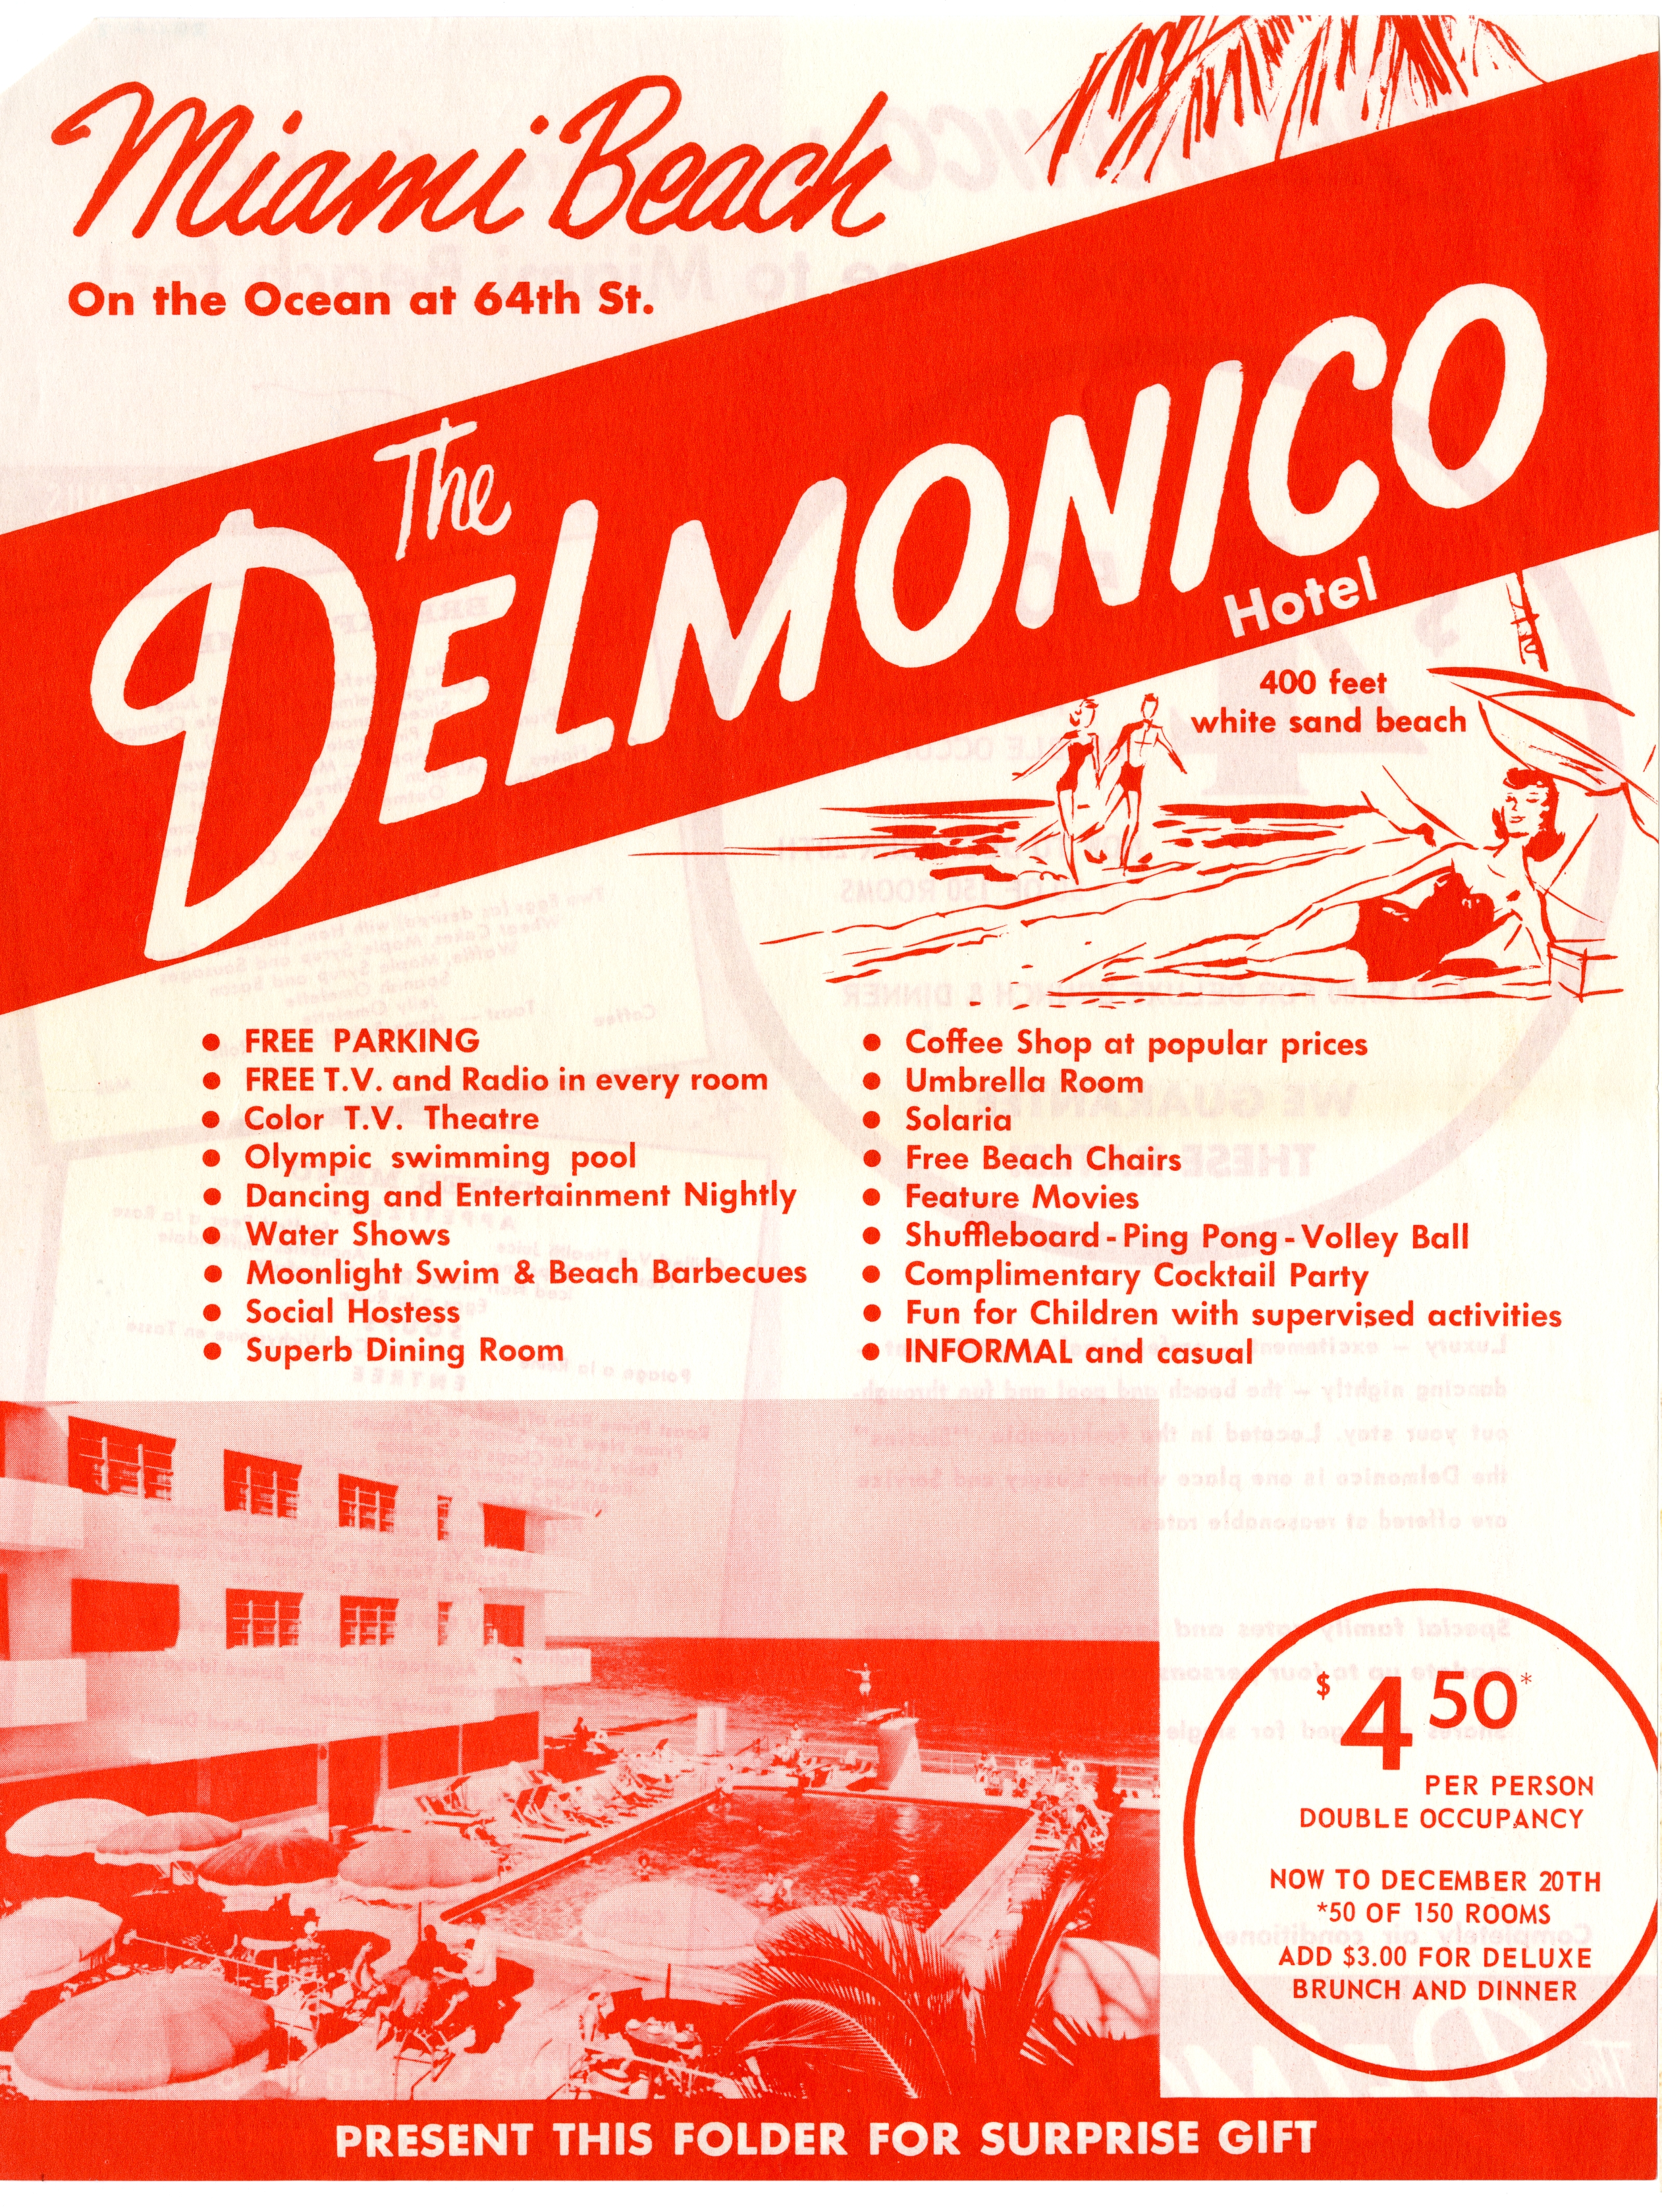 Delmonico Hotel, Miami Beach, Florida.